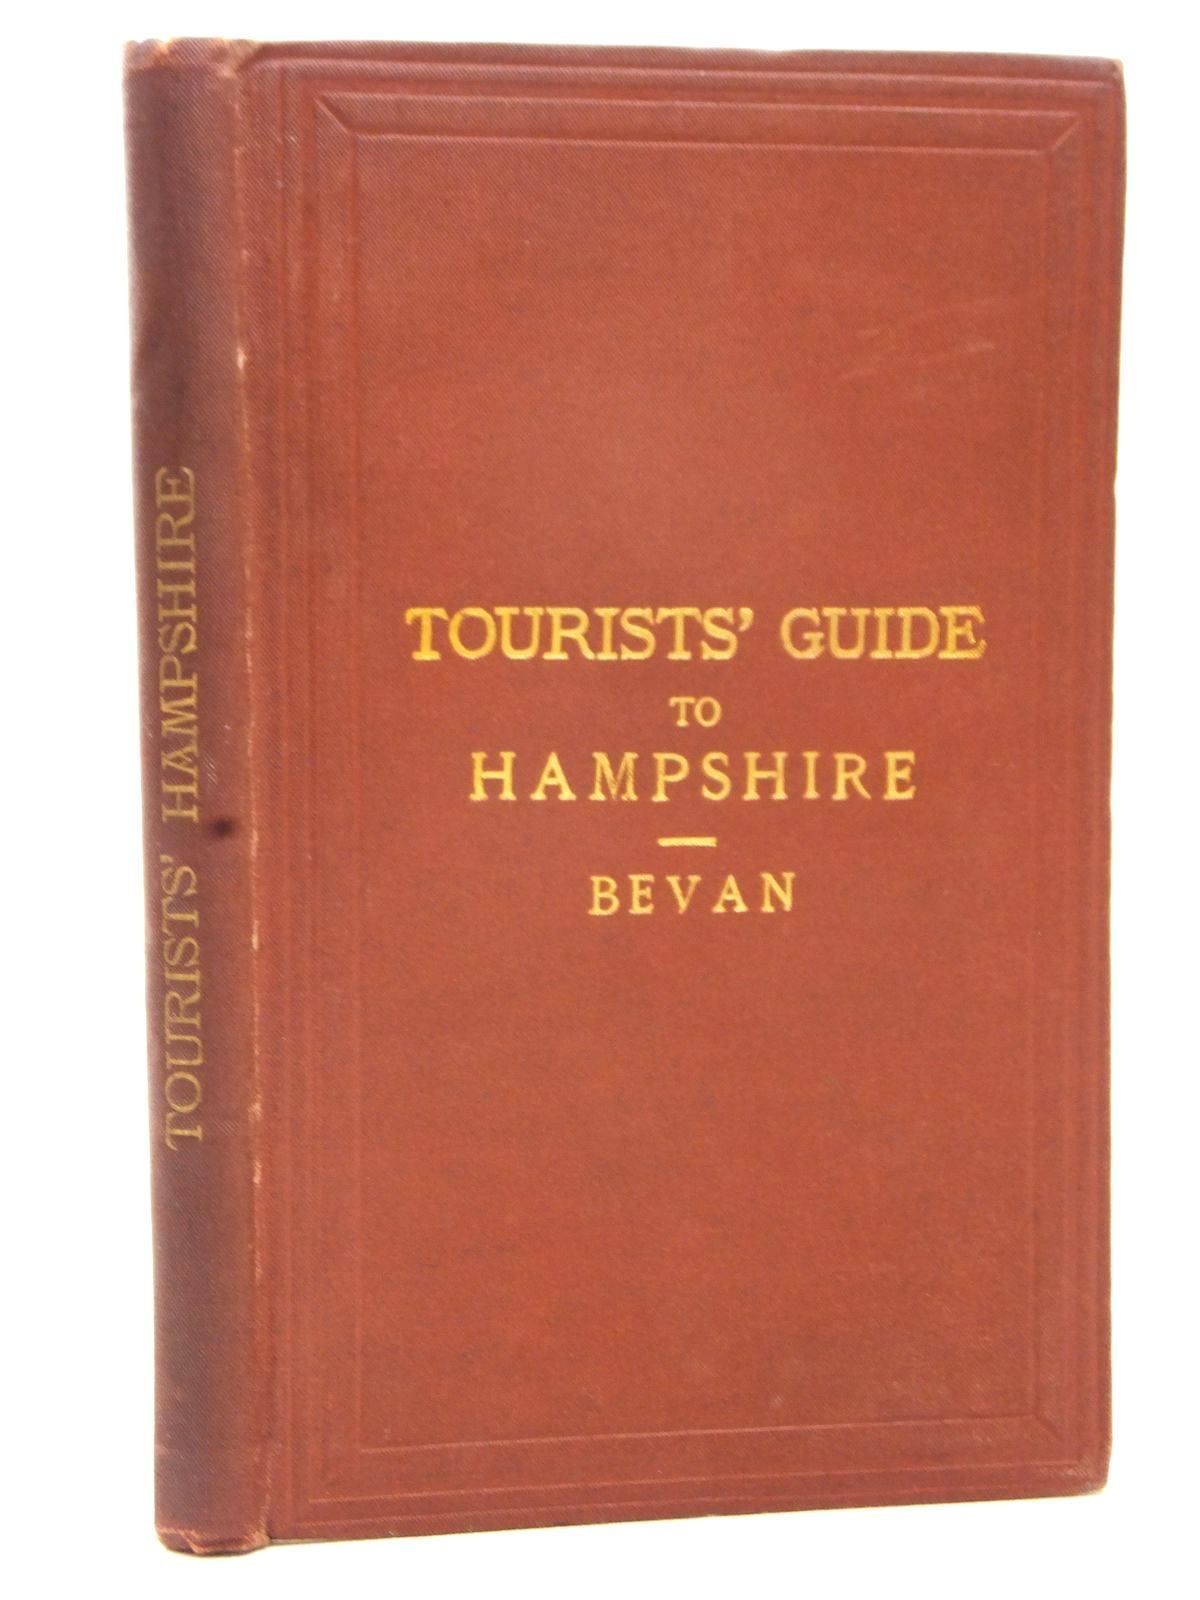 Photo of TOURIST'S GUIDE TO HAMPSHIRE written by Bevan, G. Phillips published by Edward Stanford (STOCK CODE: 1609447)  for sale by Stella & Rose's Books